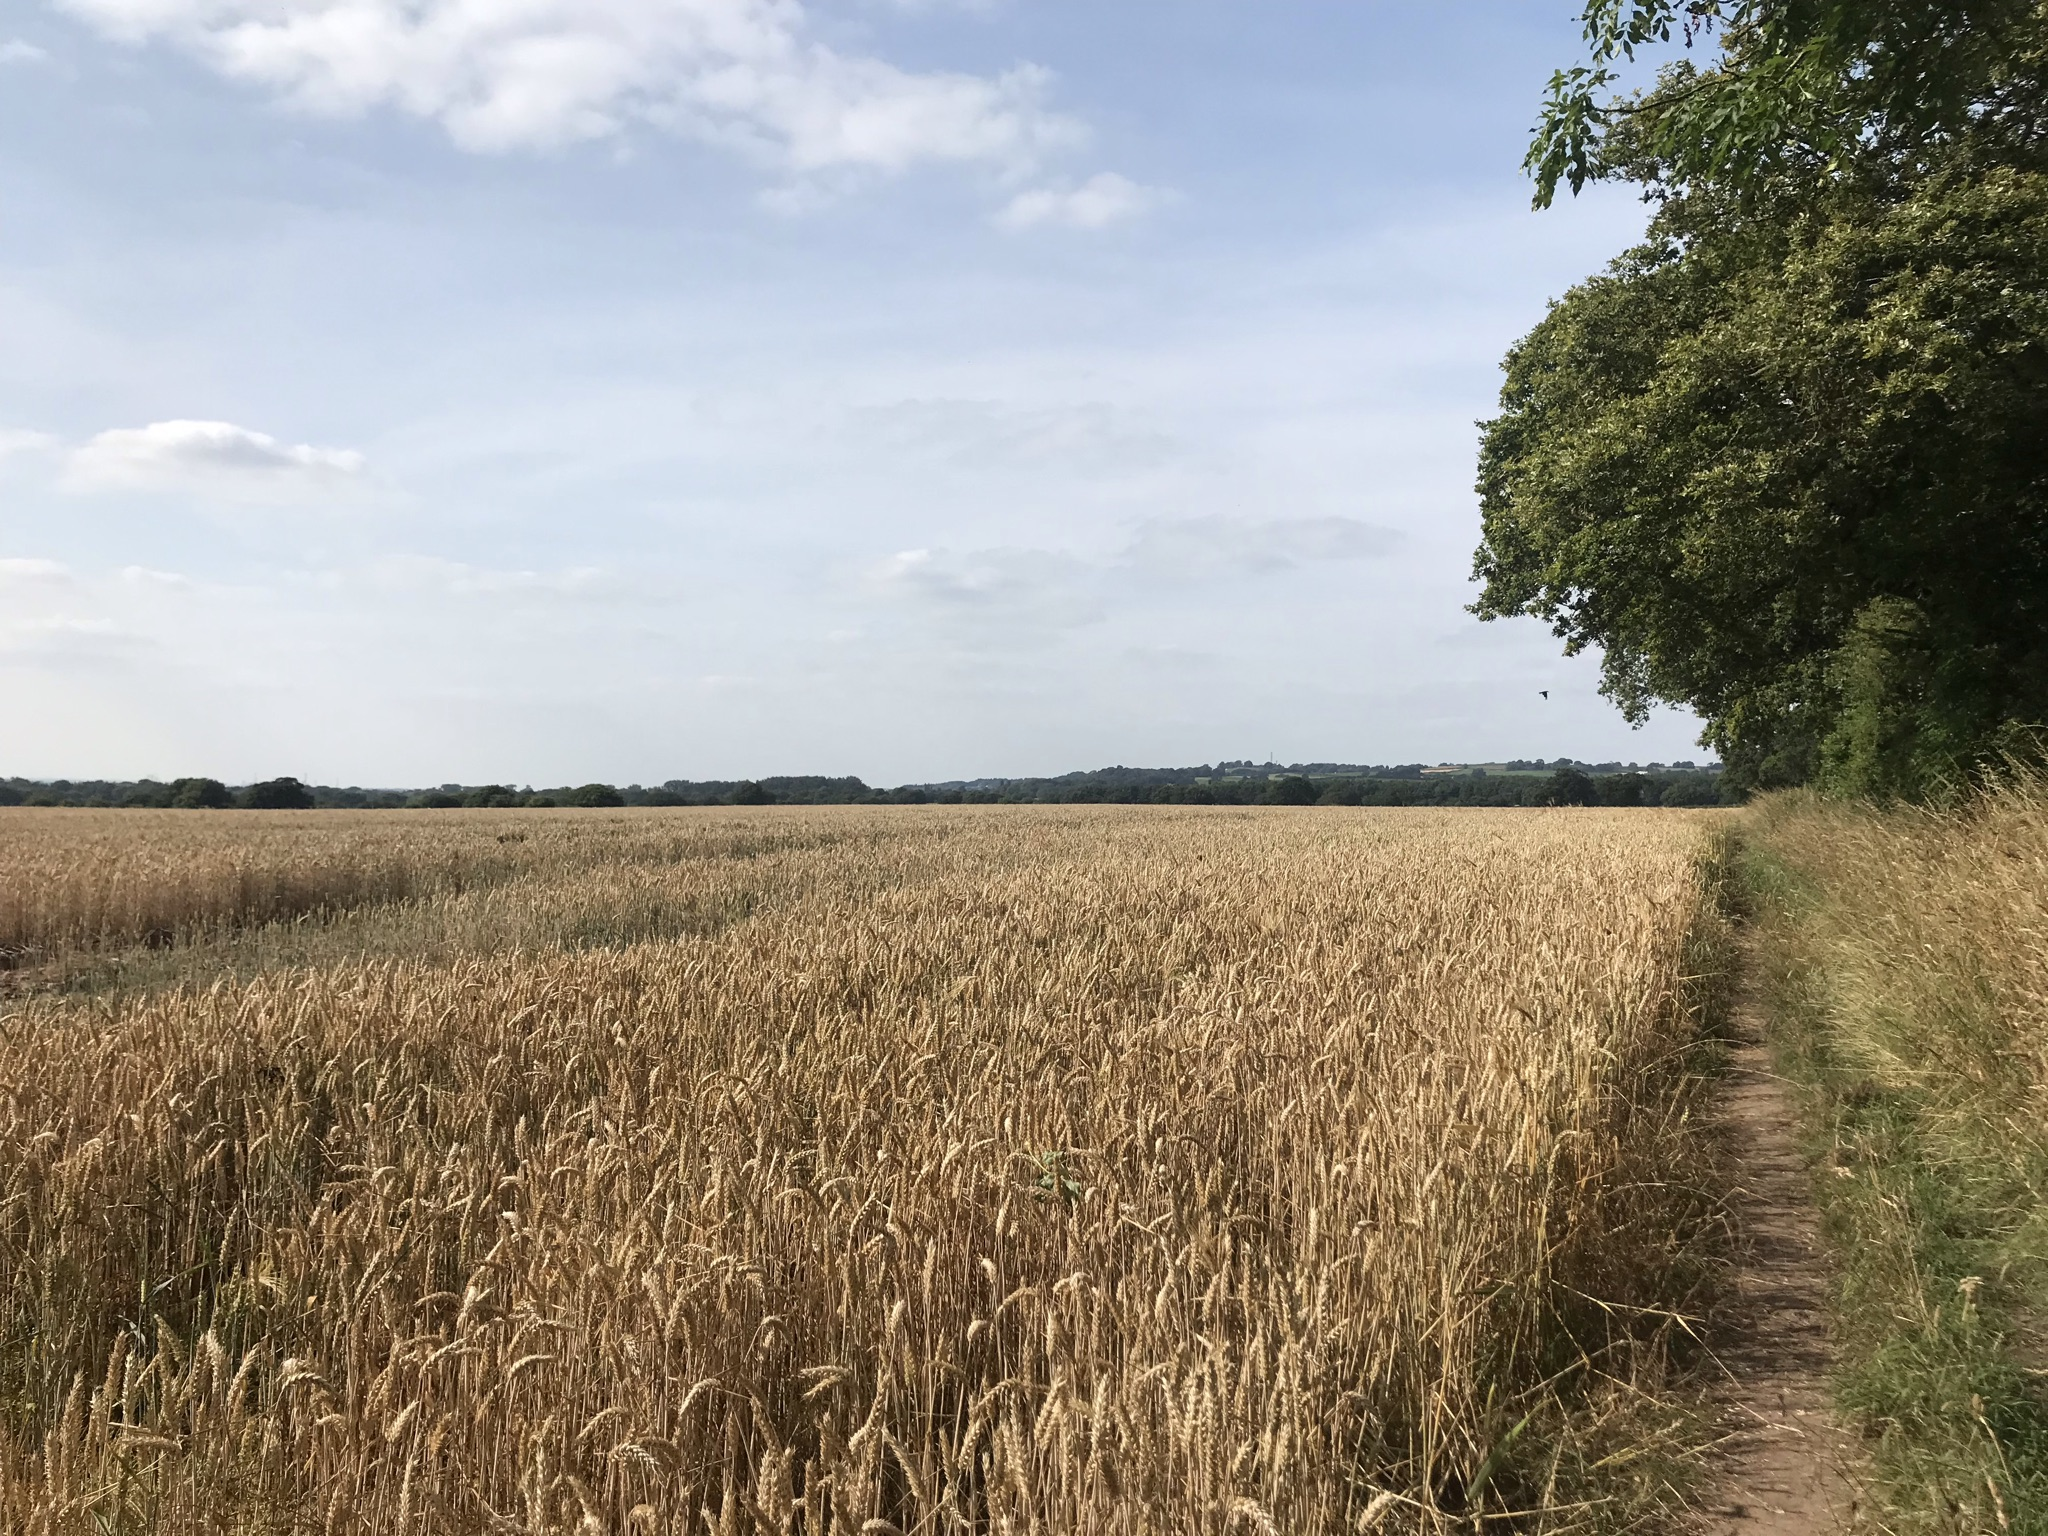 A long view over a field of ripening wheat. A narrow footpath runs along side it